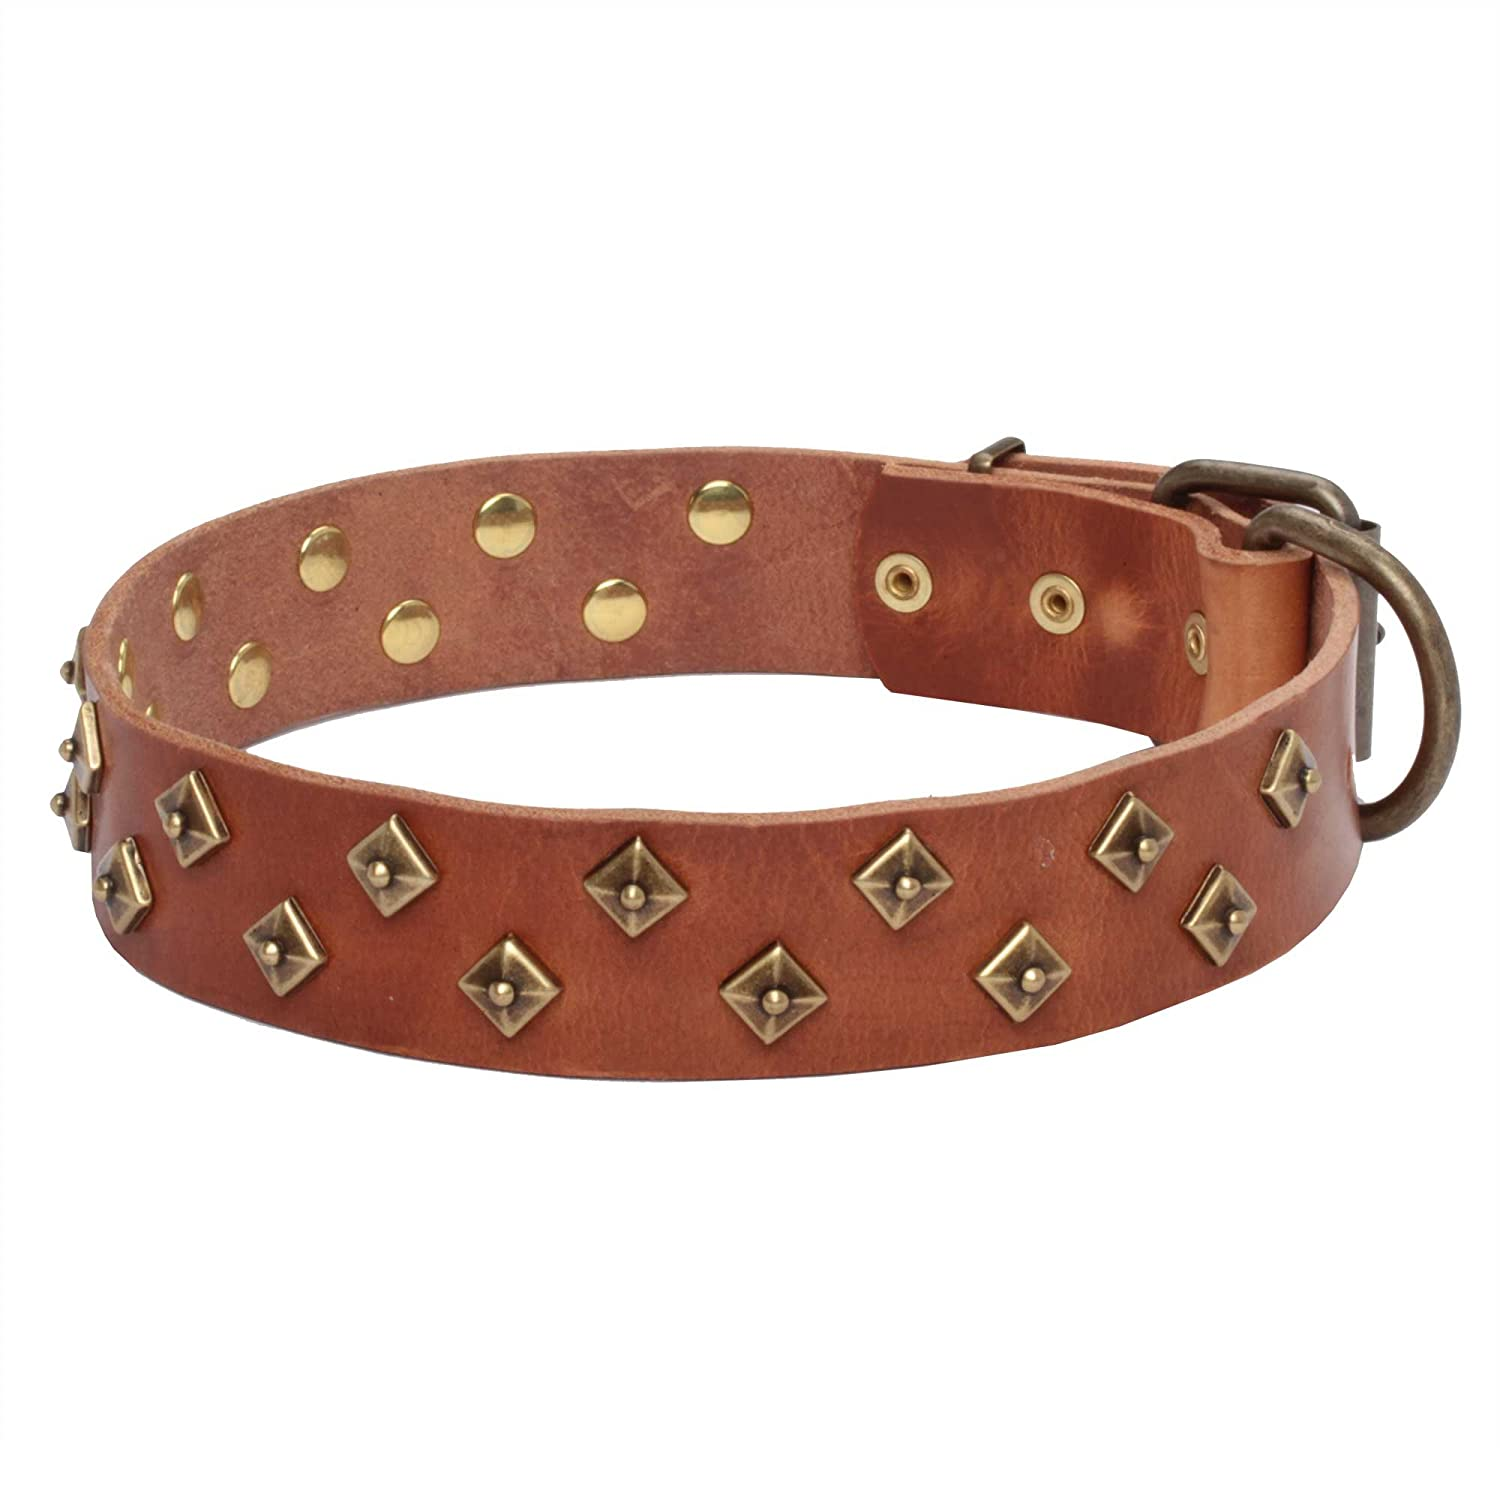 23 inch Tan Leather Dog Collar with Brass Pyramids  Haute Couture  1 1 2 inch (40 mm) wide